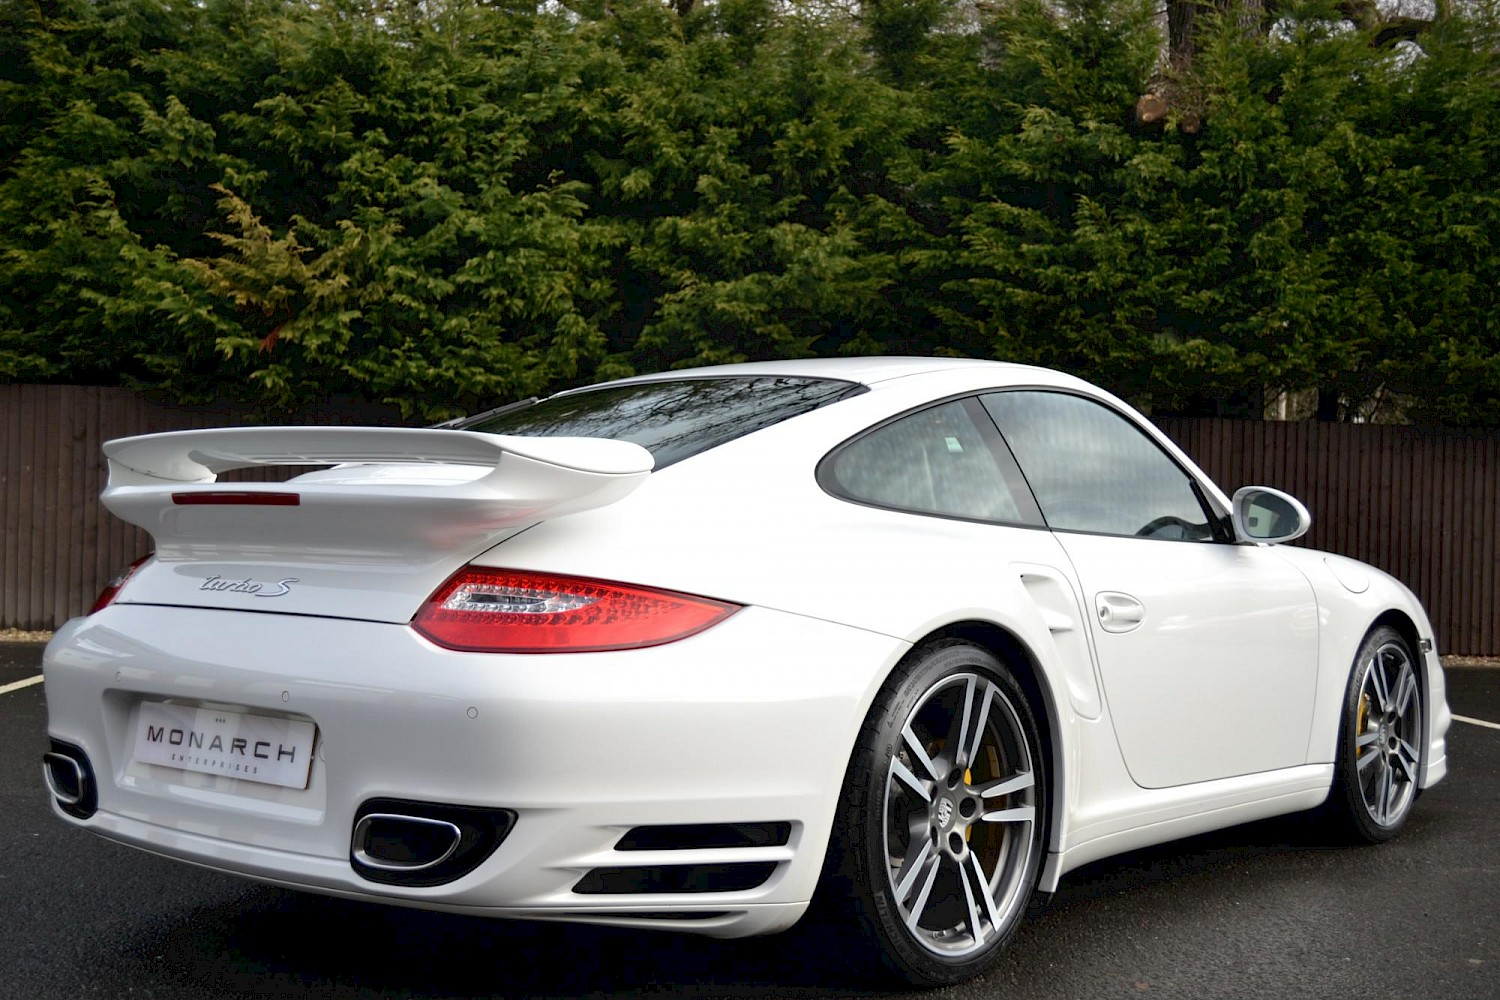 2012 12 Porsche 911 997 Turbo S Pdk Gen Ii Cars Monarch Enterprises